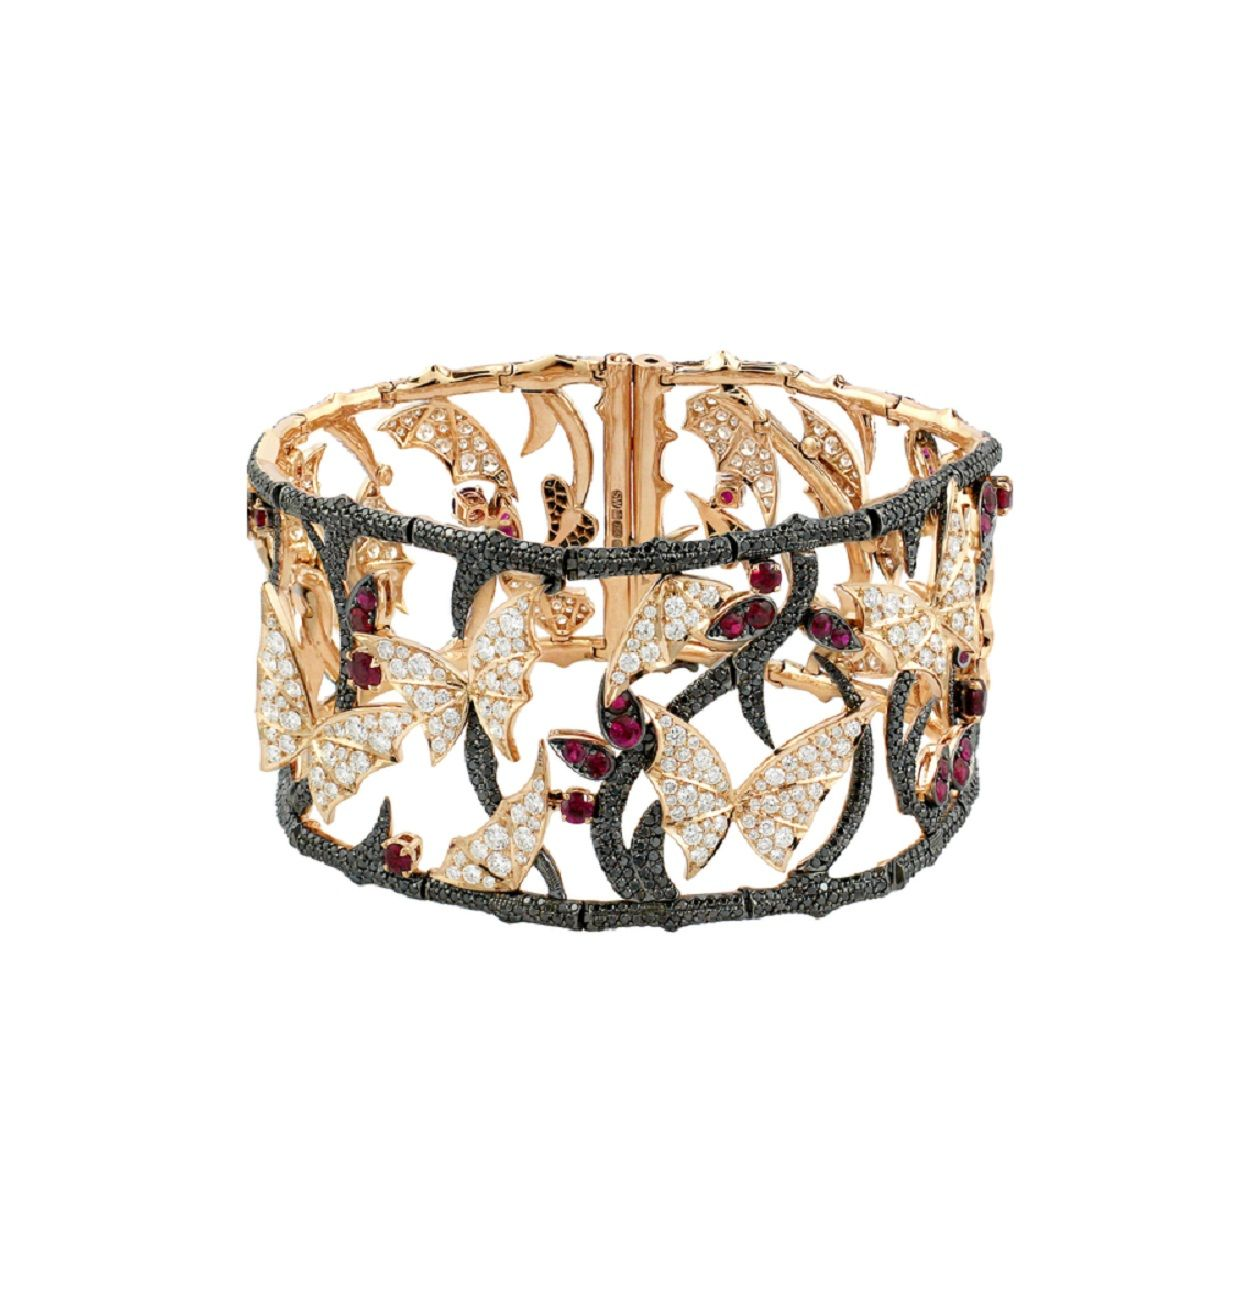 FOREST CUFF Fly By Night 18k rose gold, rubies, black and white diamonds